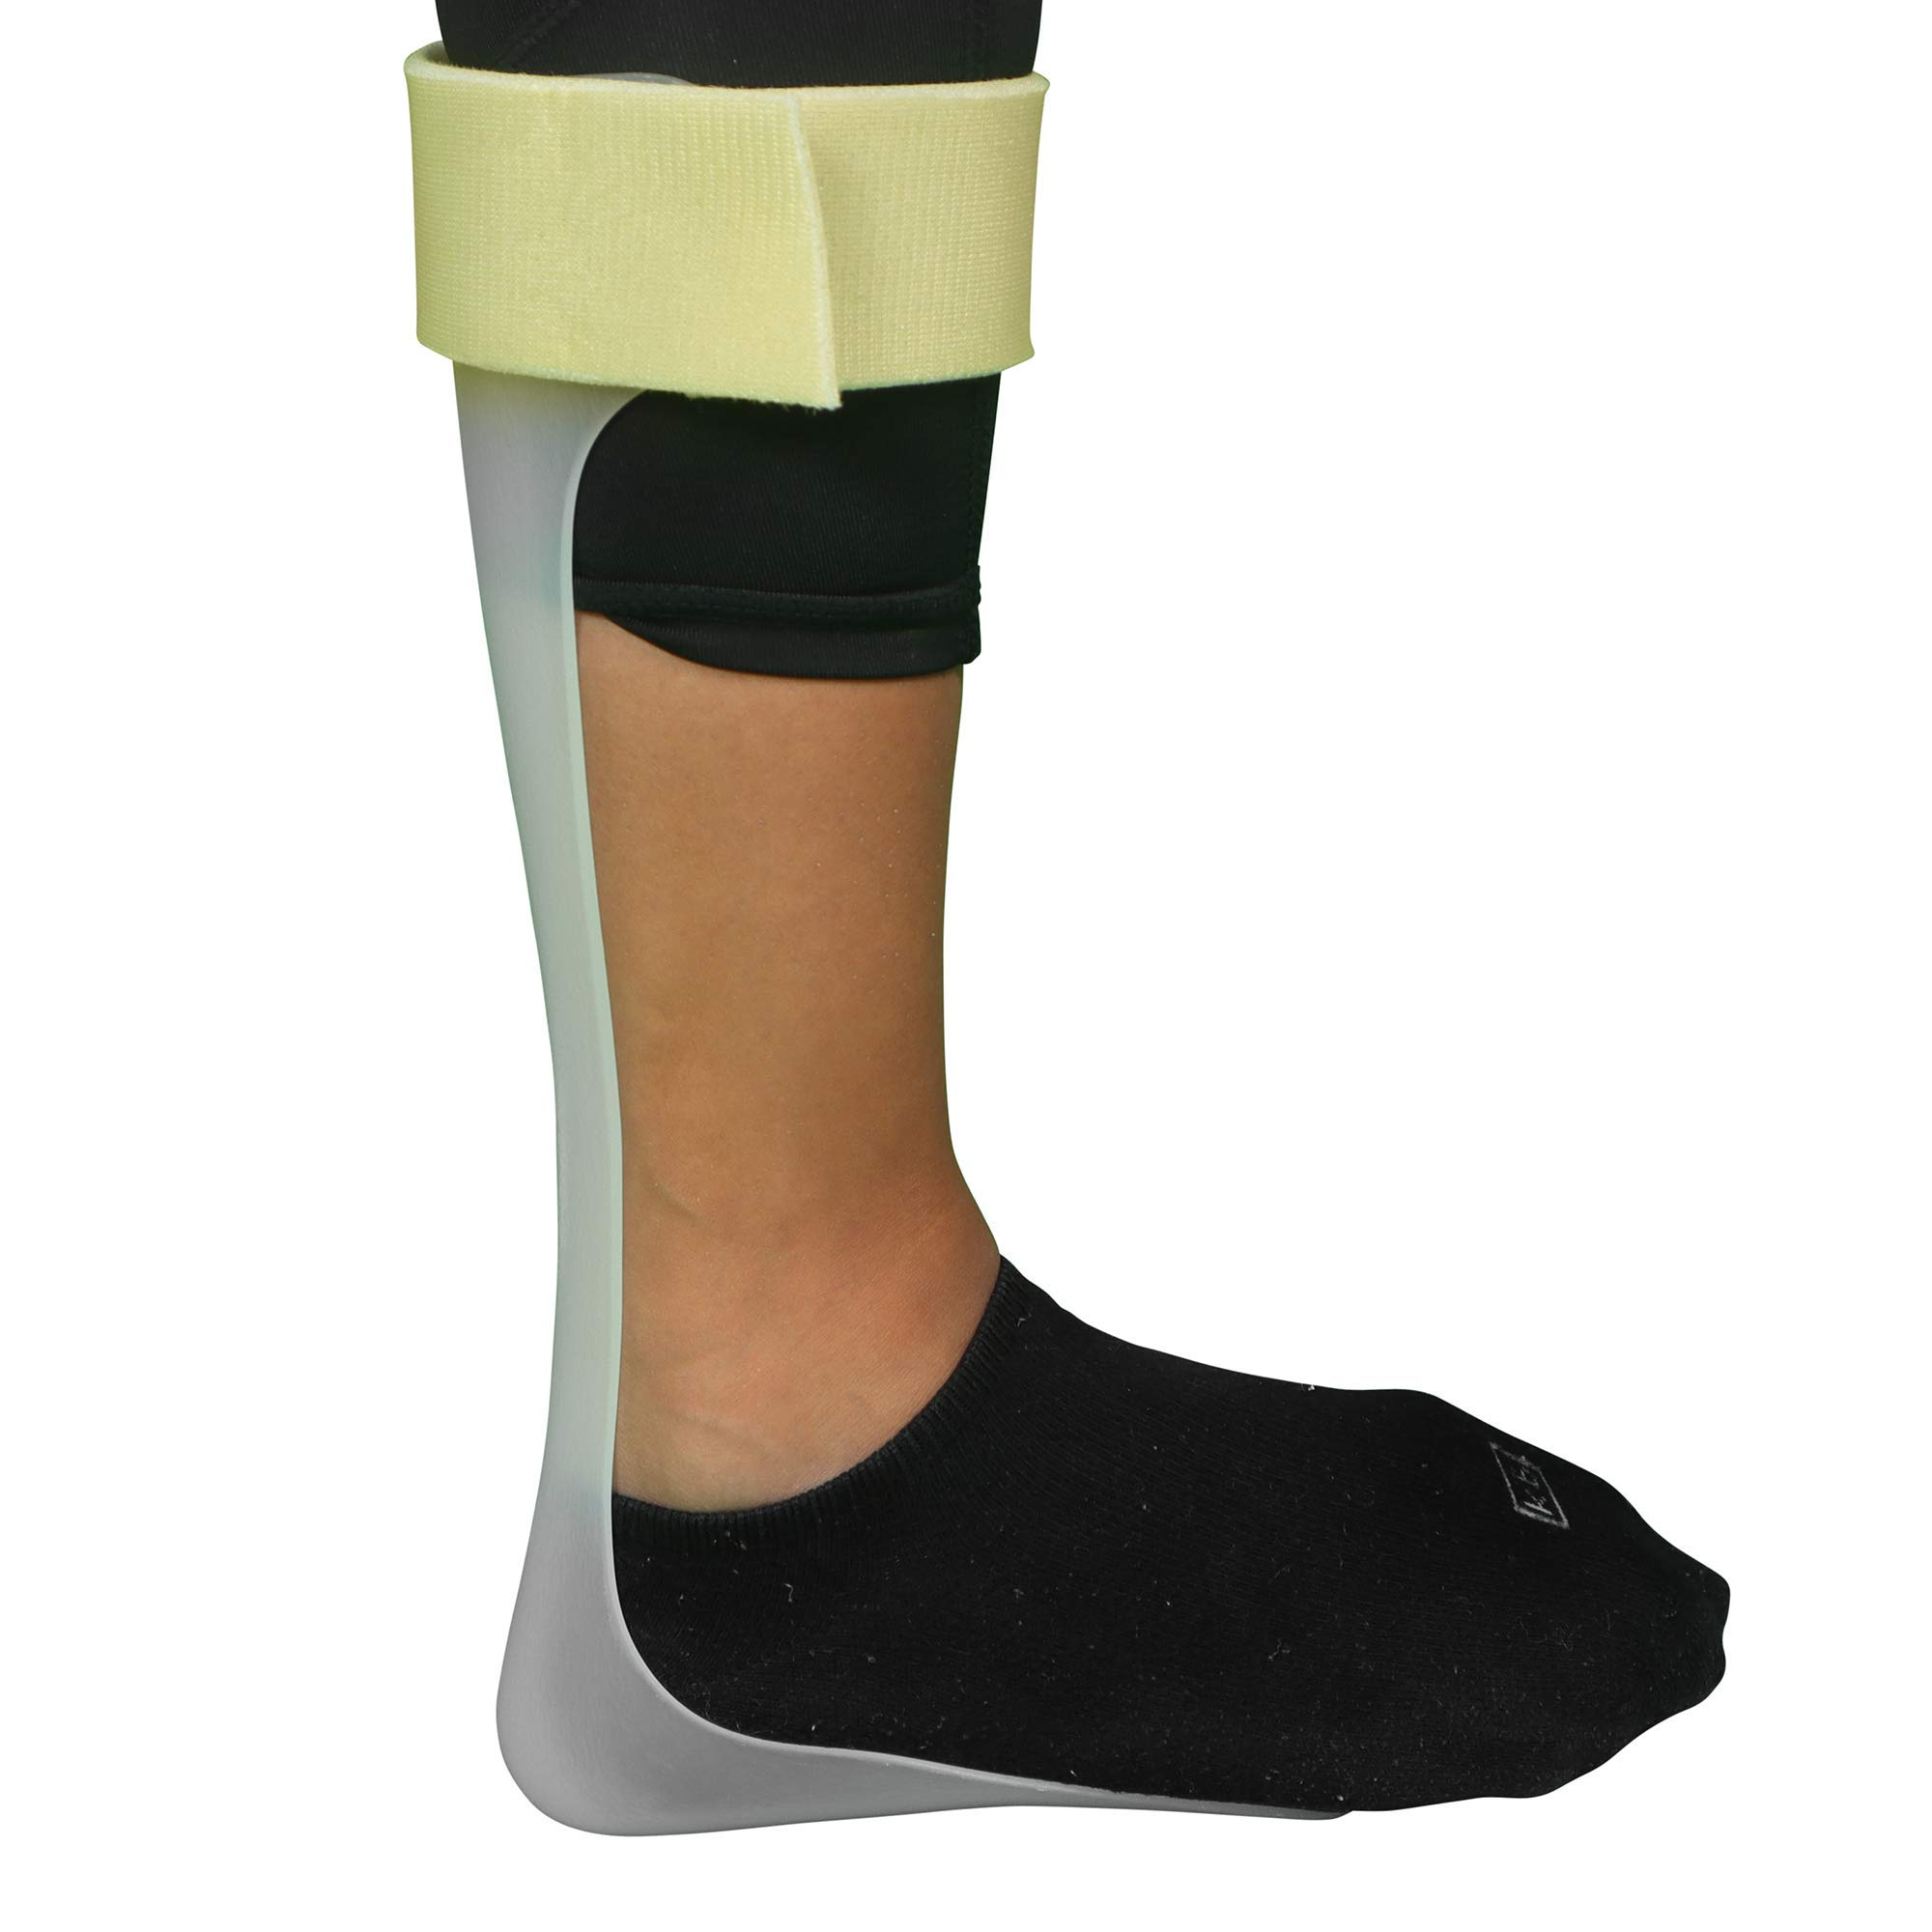 Ankle Foot Orthosis Support - AFO - Drop Foot Support Splint Left, Medium by MARS WELLNESS